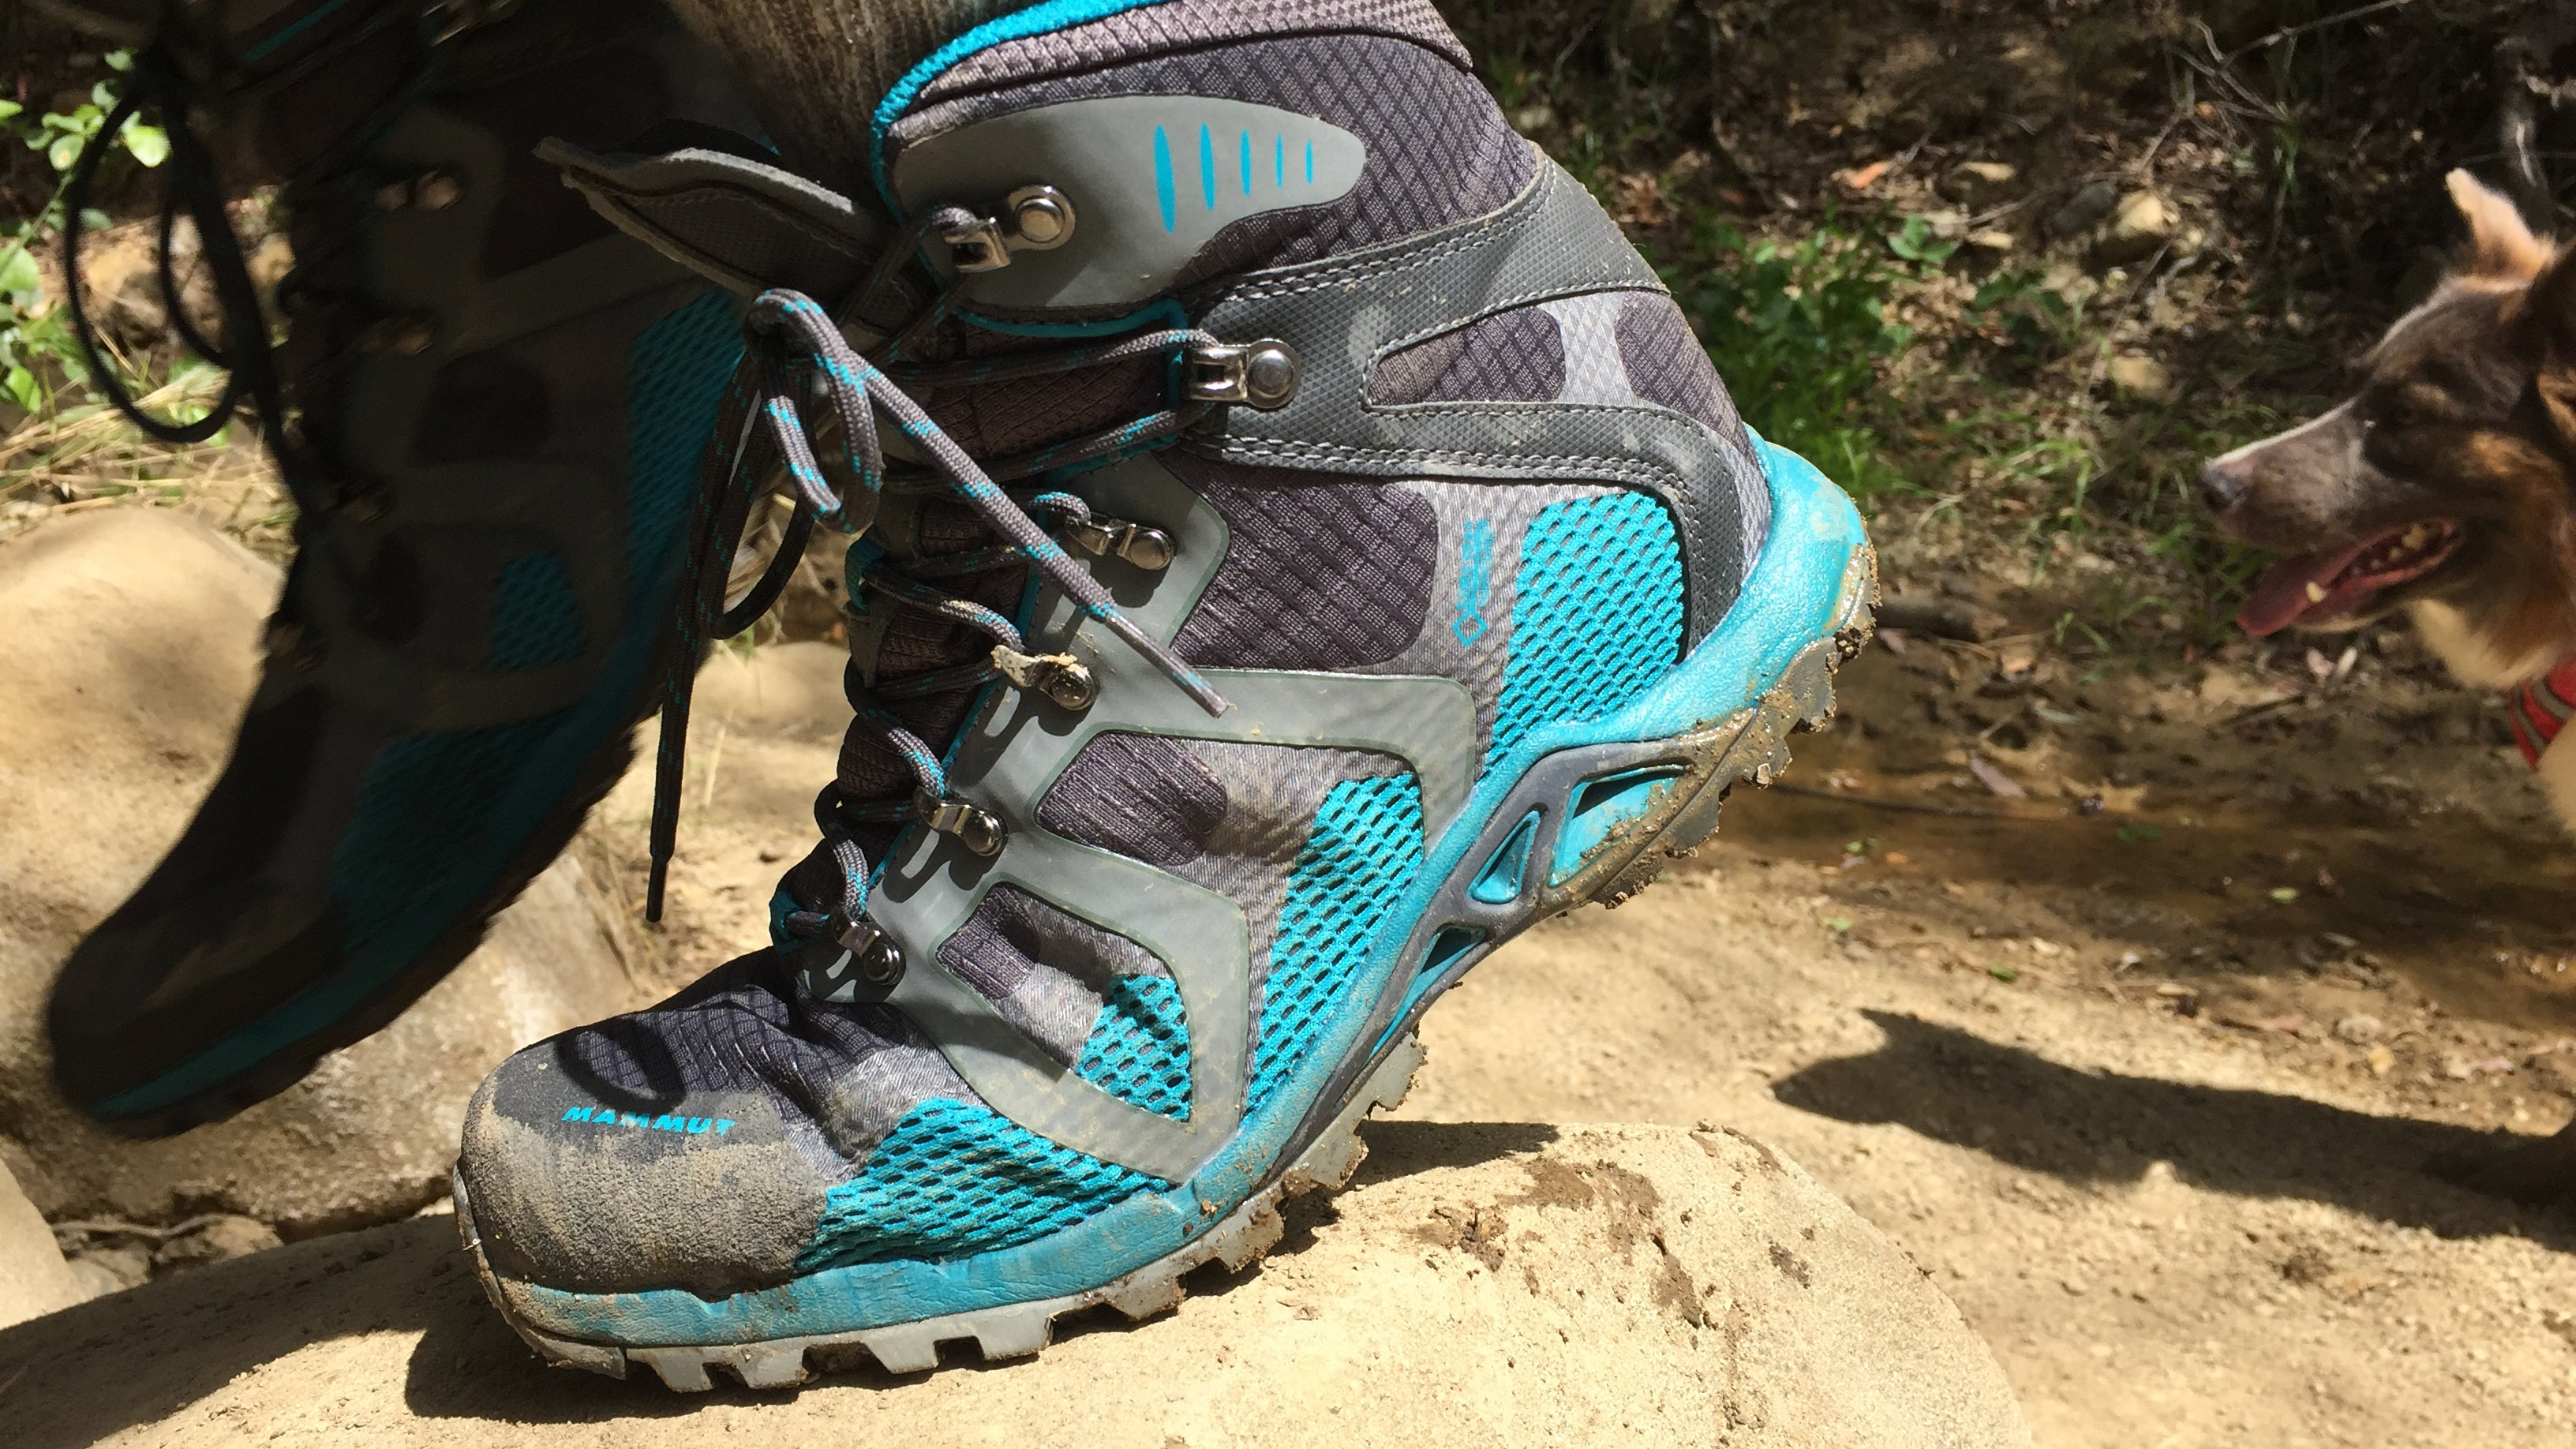 The Best Hiking Boots for Wide Feet 2017